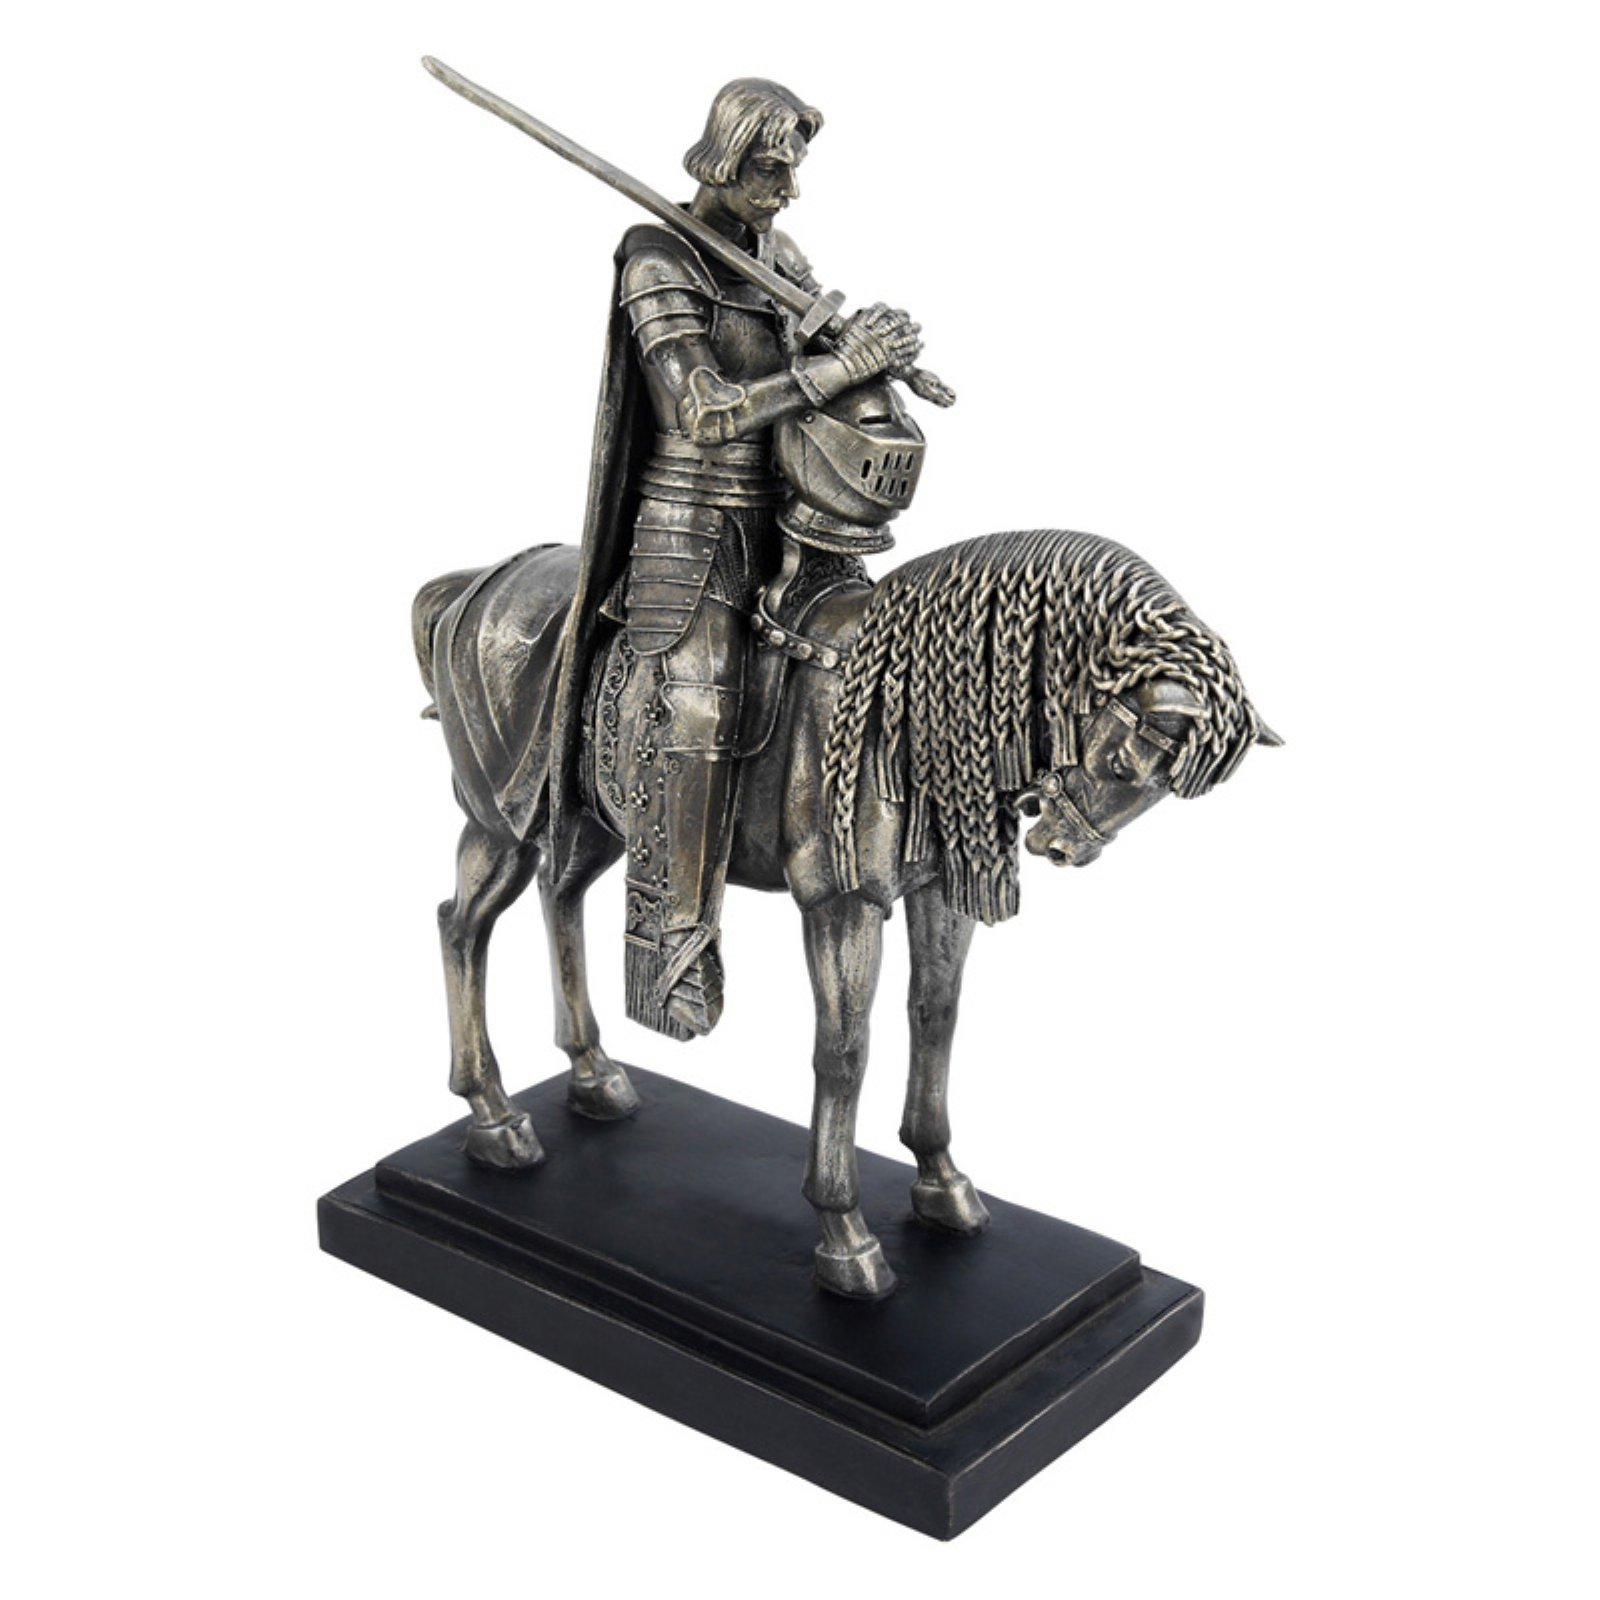 Design Toscano 10 in. Invocation: The Power of King Arthur Statue